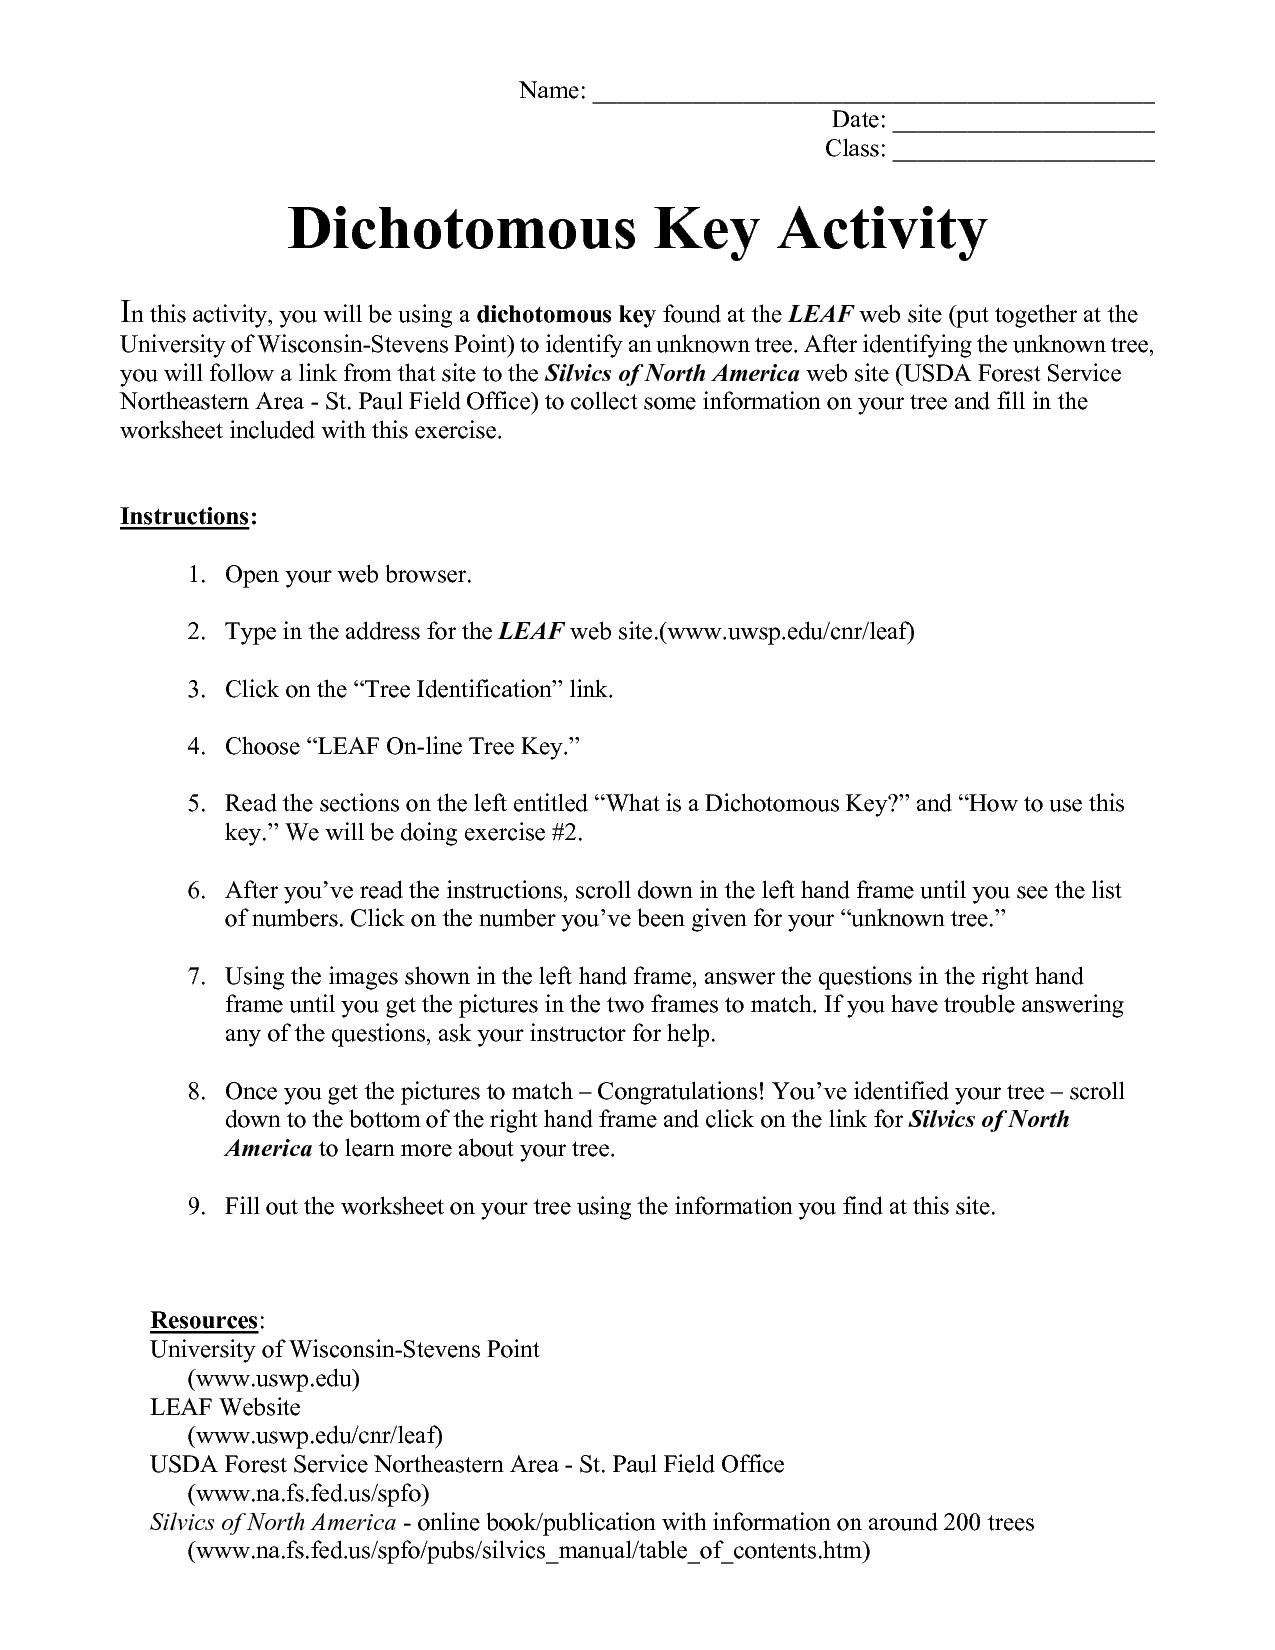 Blank Dichotomous Key Worksheet